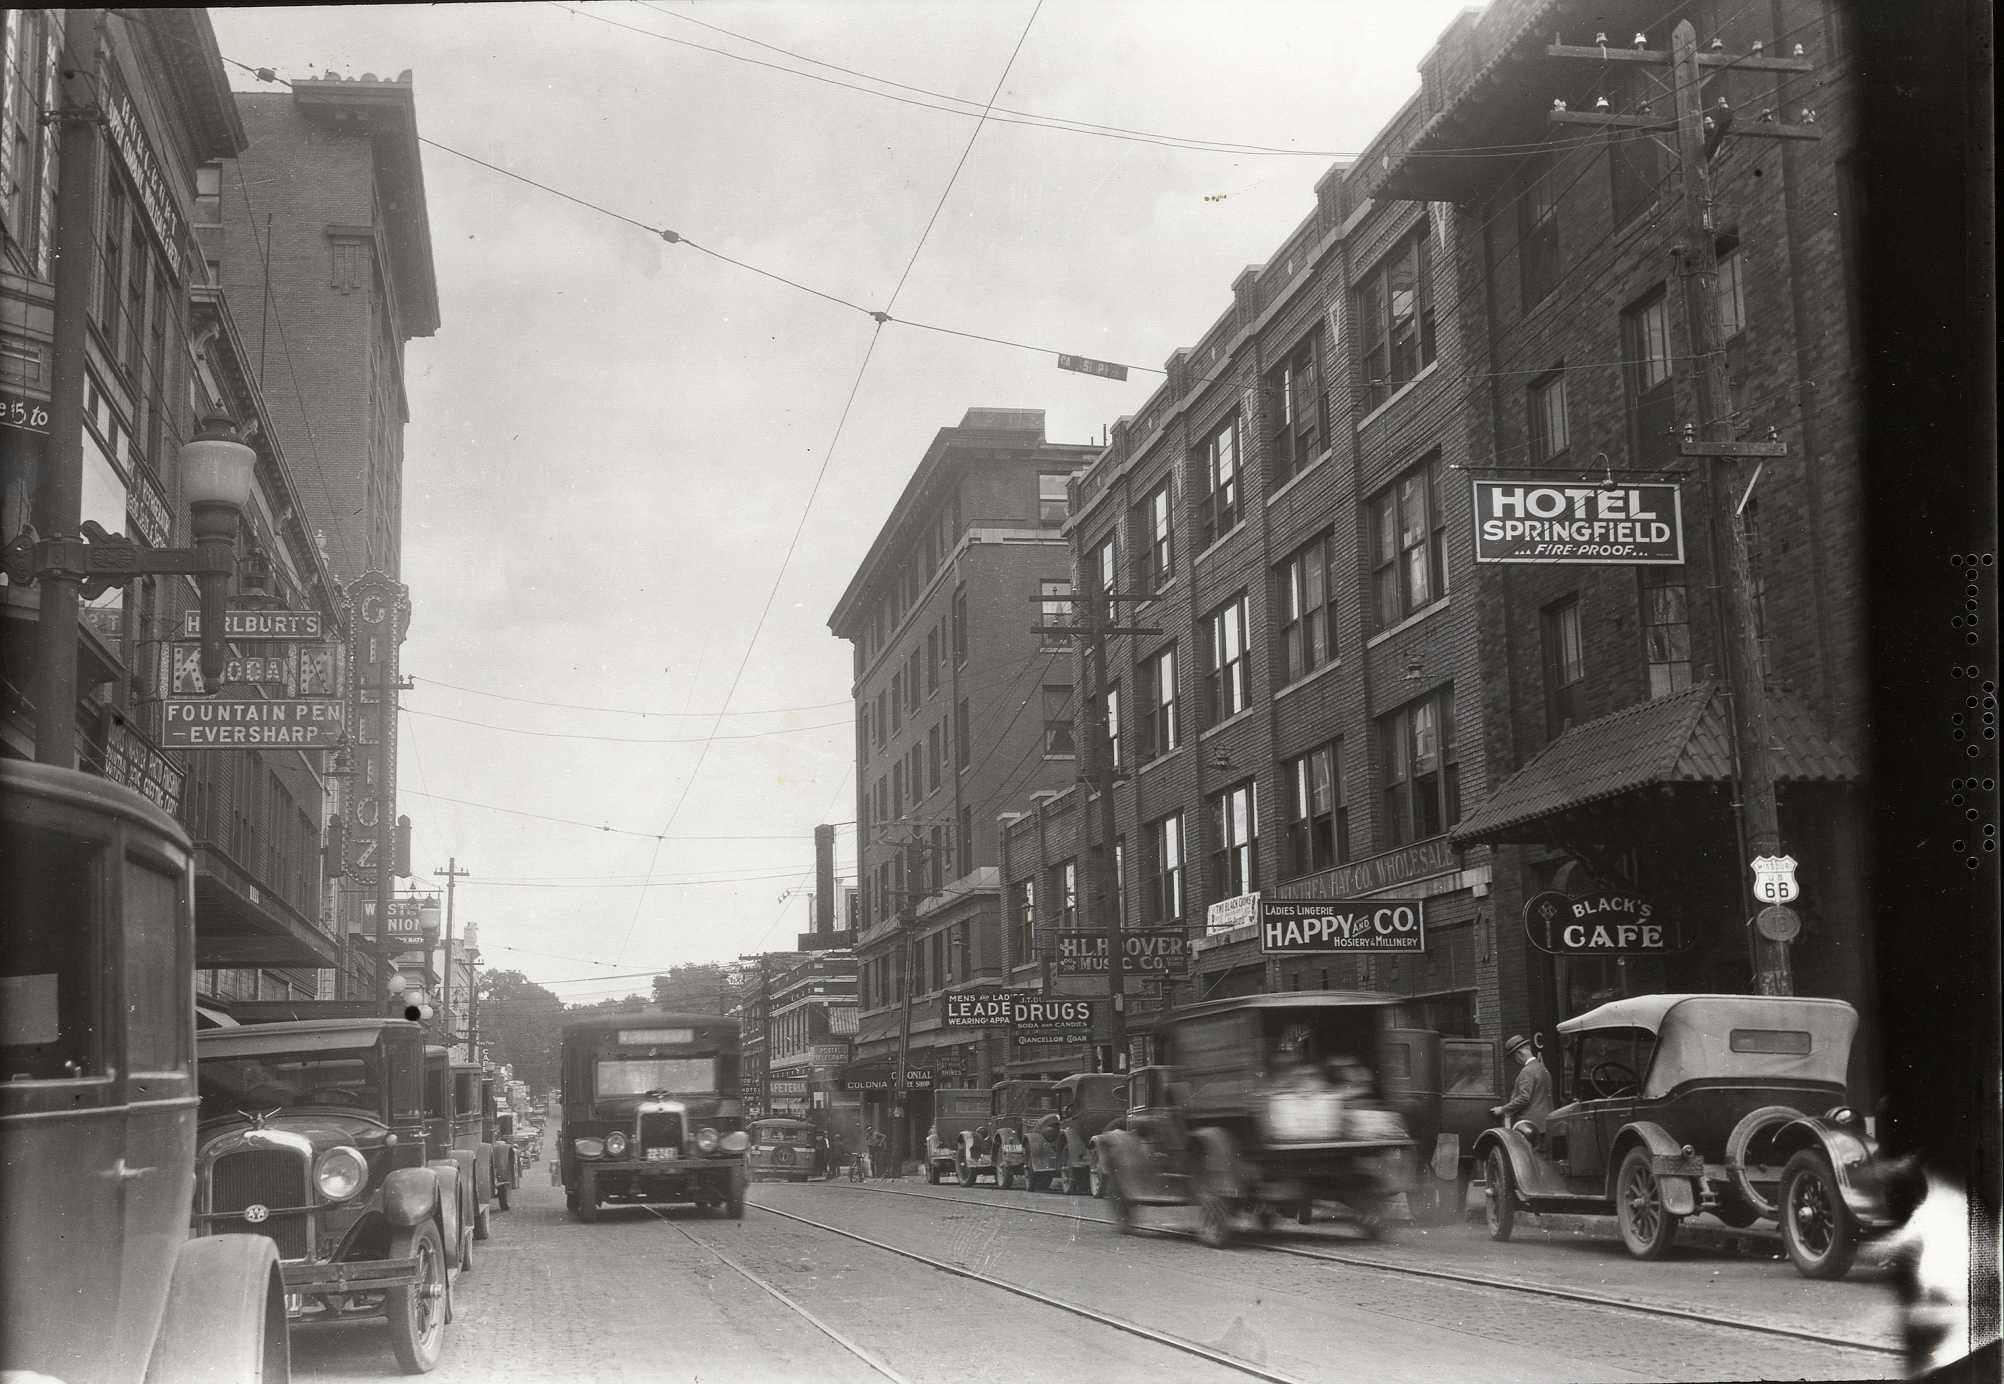 Springfield, Missouri in 1926